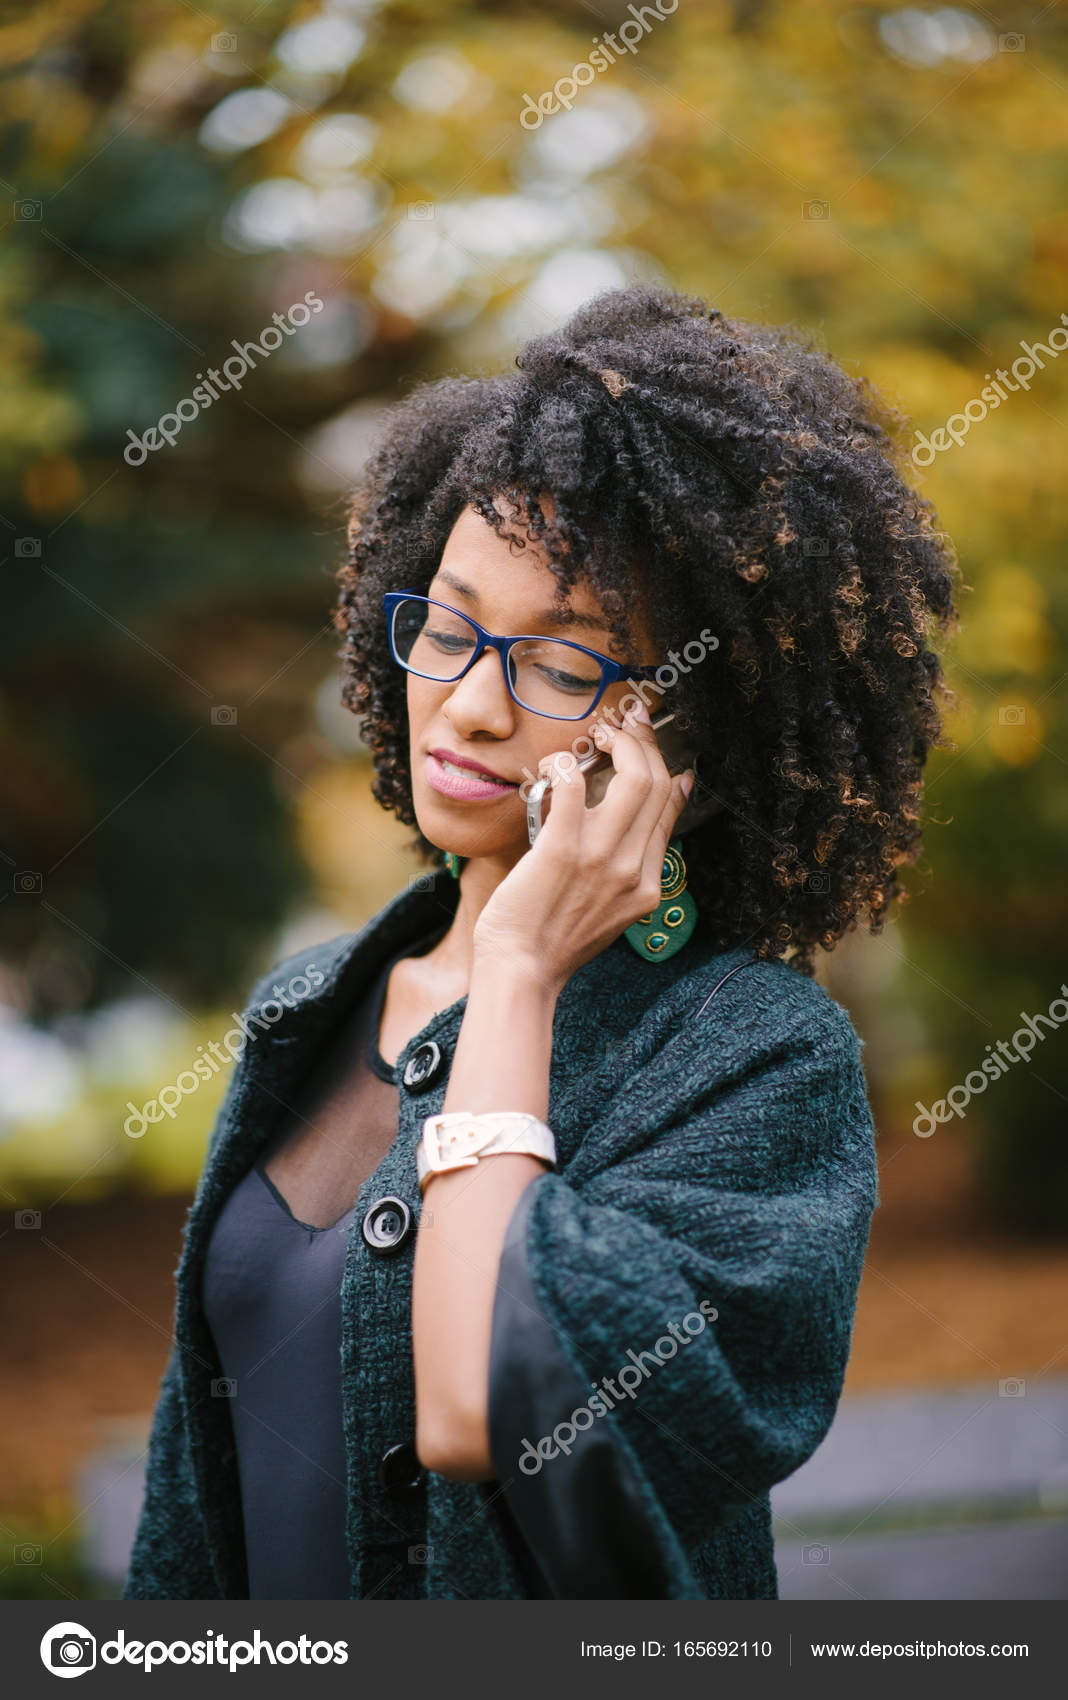 Black Woman During A Mobile Phone Call In Autumn Stock Photo